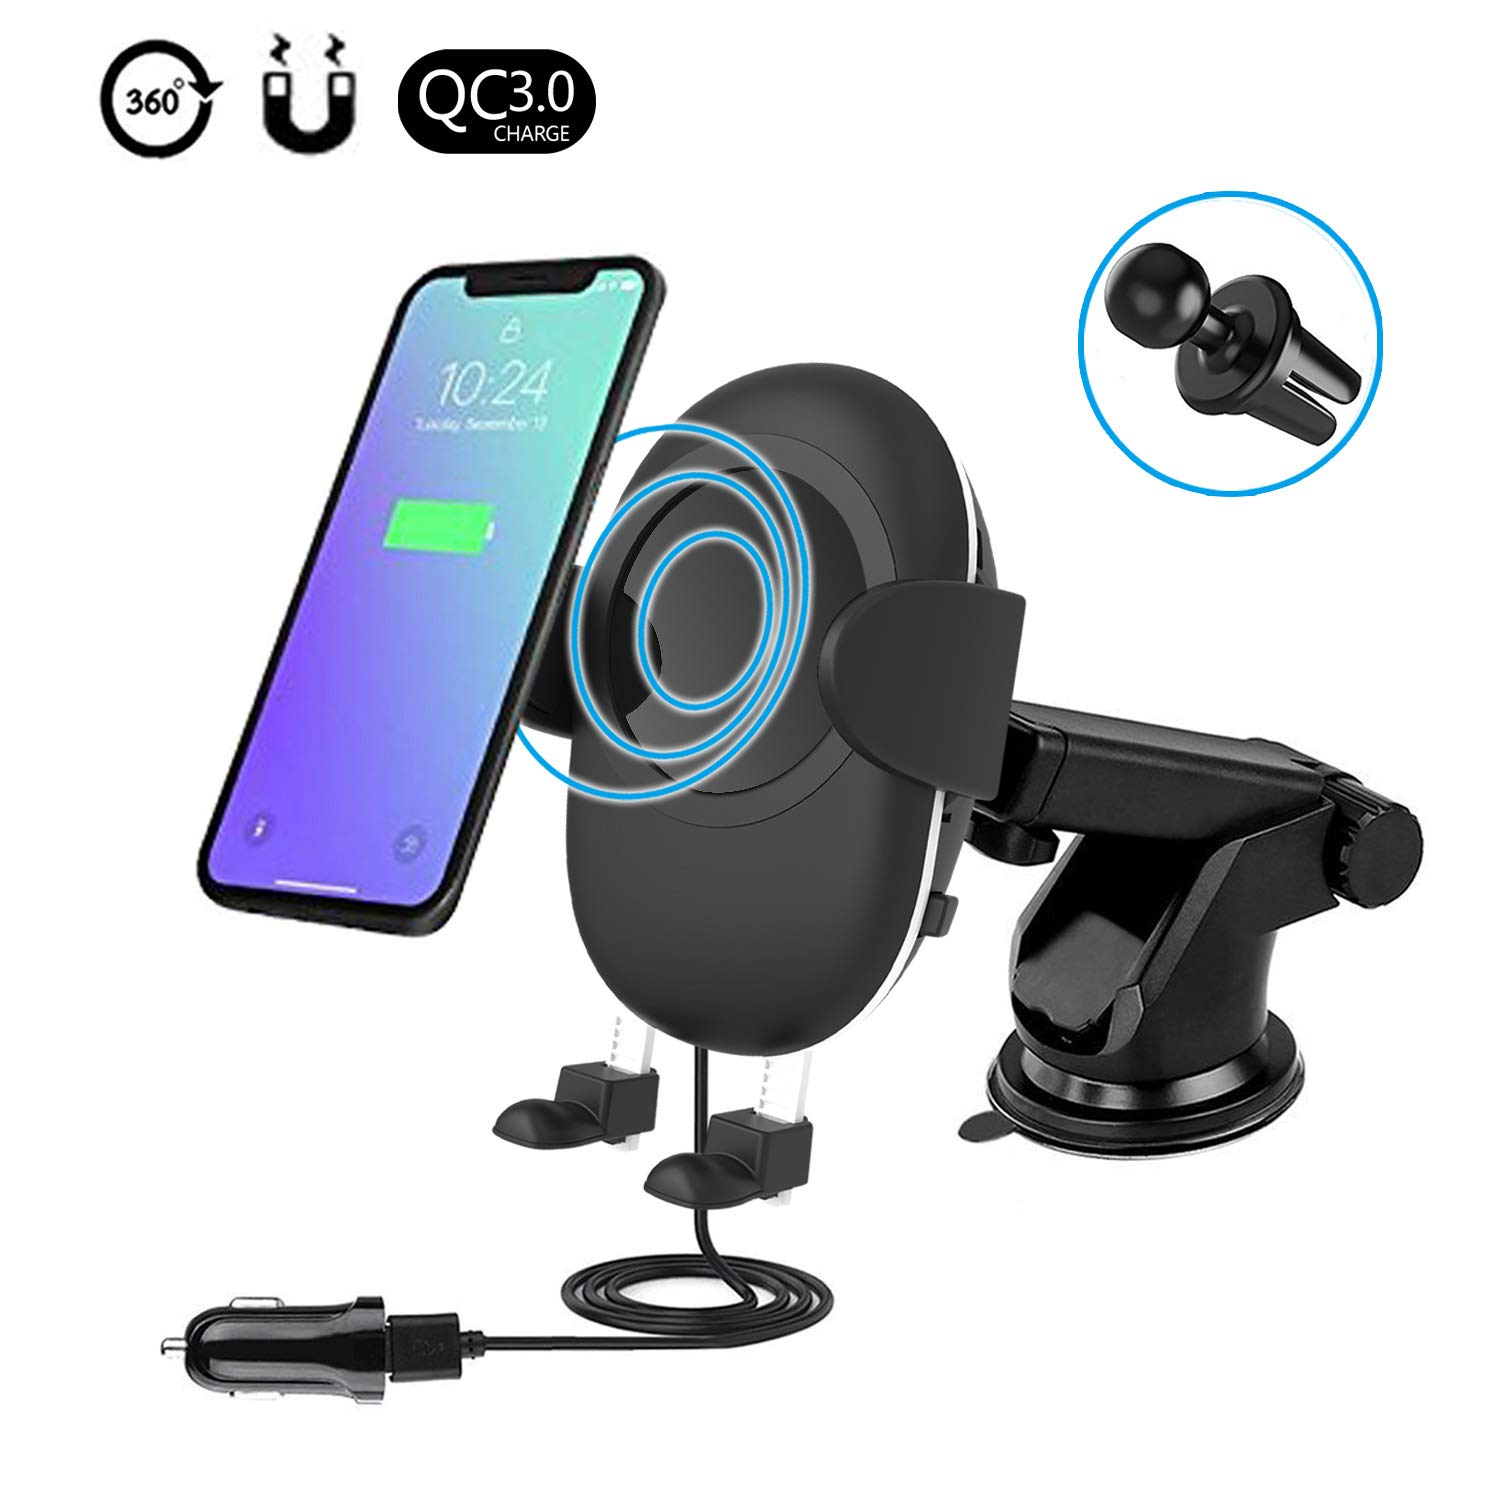 Spedal Wireless Car Charger, Qi Fast Charger Air Vent Phone Holder Car Mount Compatible with Samsung Galaxy Note 8/S8/S8 Plus and All Qi Enabled Devices by Spedal